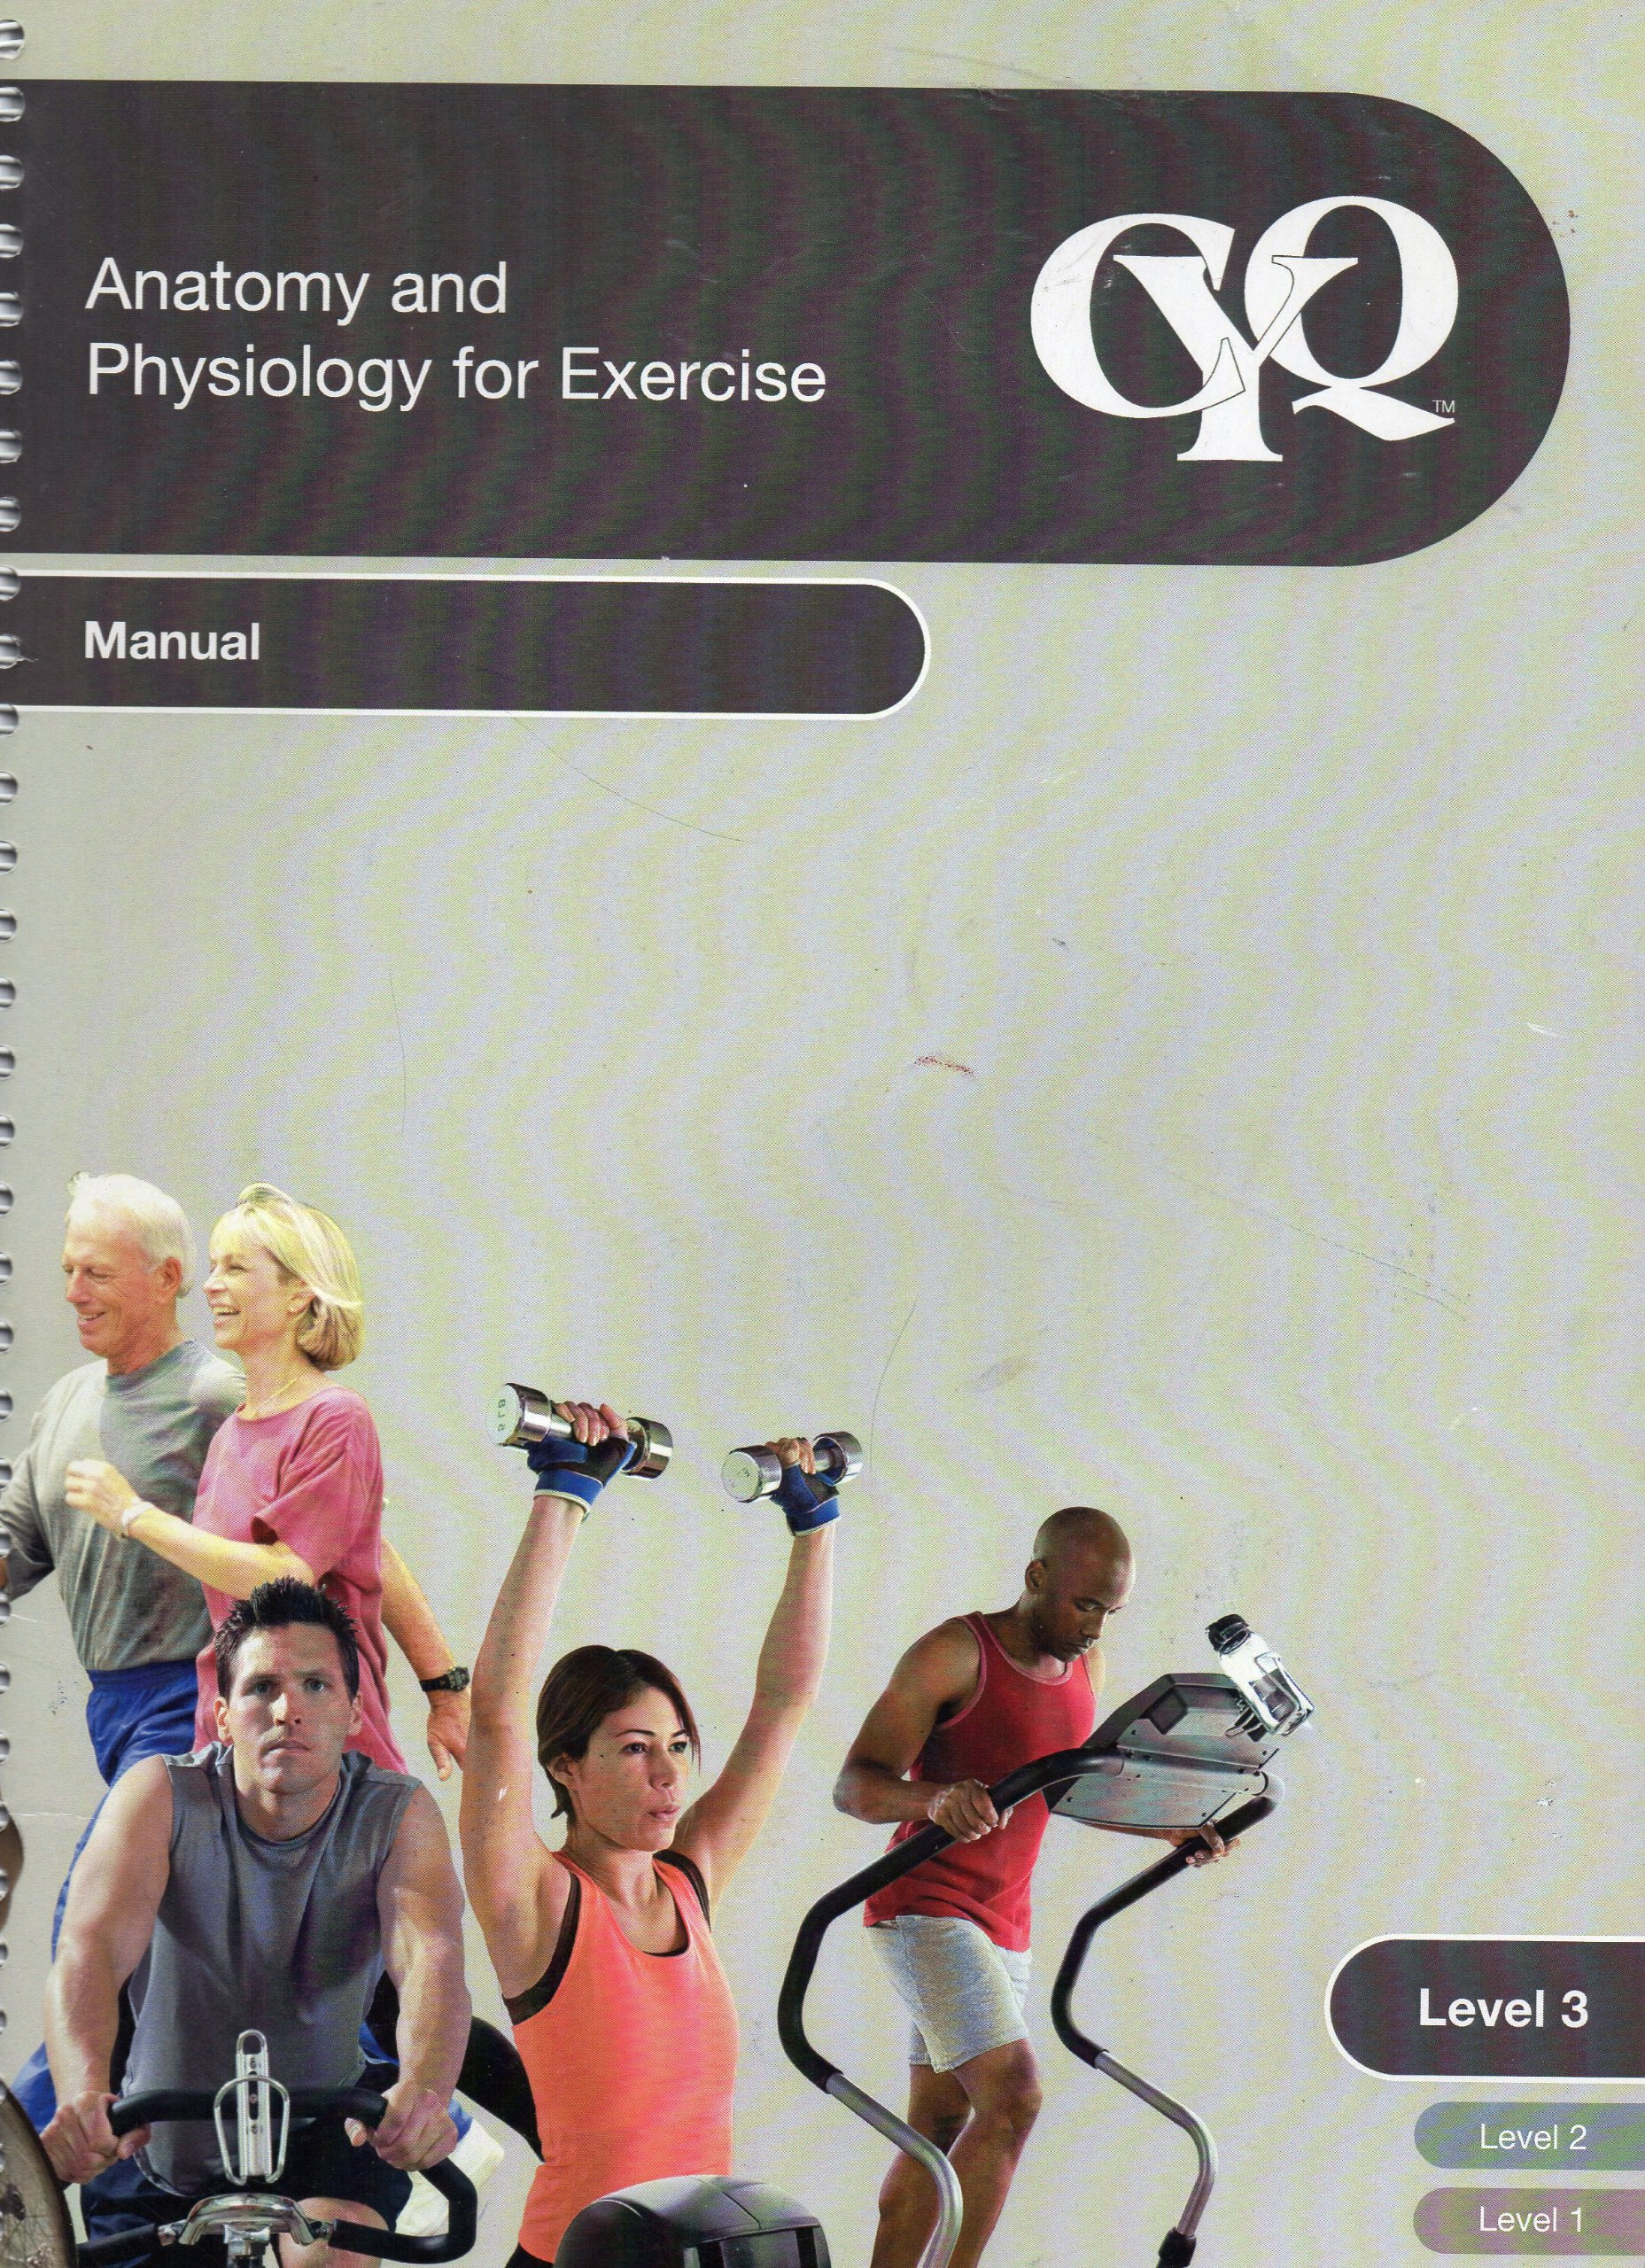 CYQ Anatomy and Physiology for Exercise Manual: Amazon.co.uk: Books